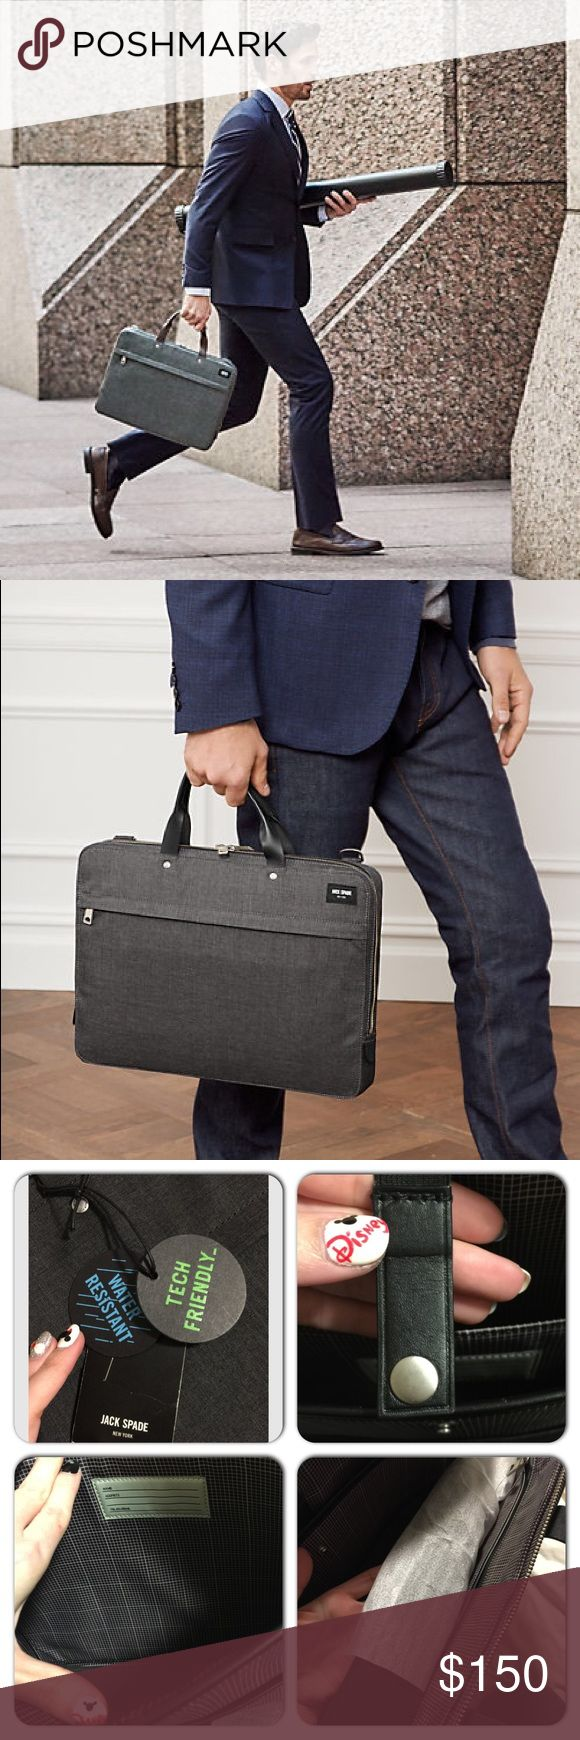 """HPJack Spade New York Tech Oxford Slim Brief Timeless,streamlined & designed for everyday utility.Bought this one for """"my paper"""" but it's way too """"men"""" .This Charcoal Brief offers the water resistant performance of a modern technical material, along with timeless menswear-inspired styling. The streamlined briefcase is detailed with custom die-cast Jack Spade hardware, bridle leather trim, and durable nylon lining. Functional features include external slip and zipper pockets, interior…"""